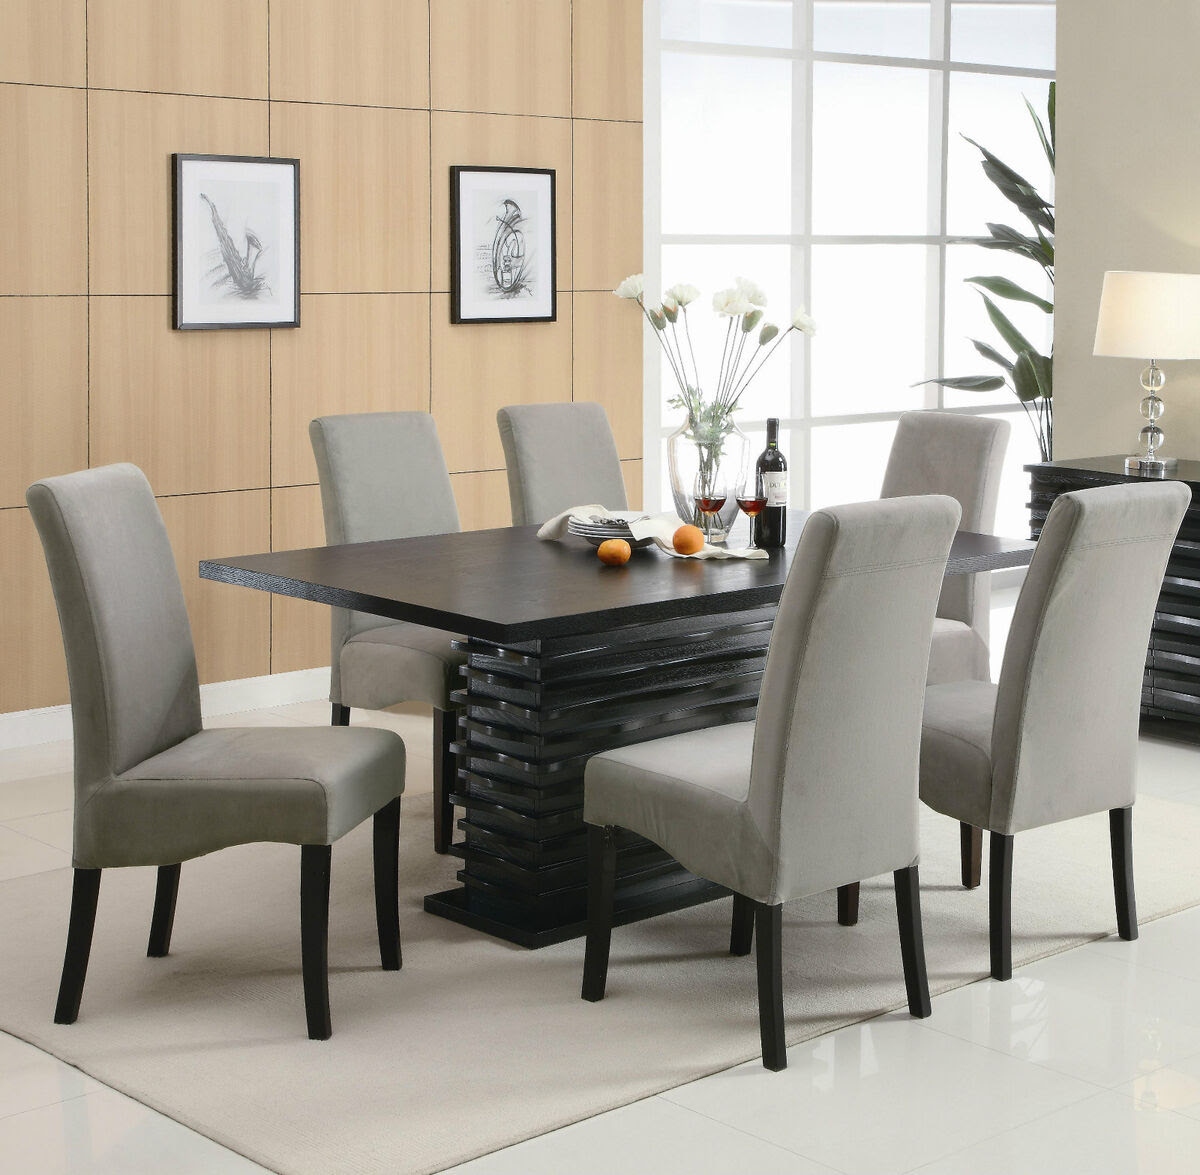 Wooden Dining Room Tables For Sale